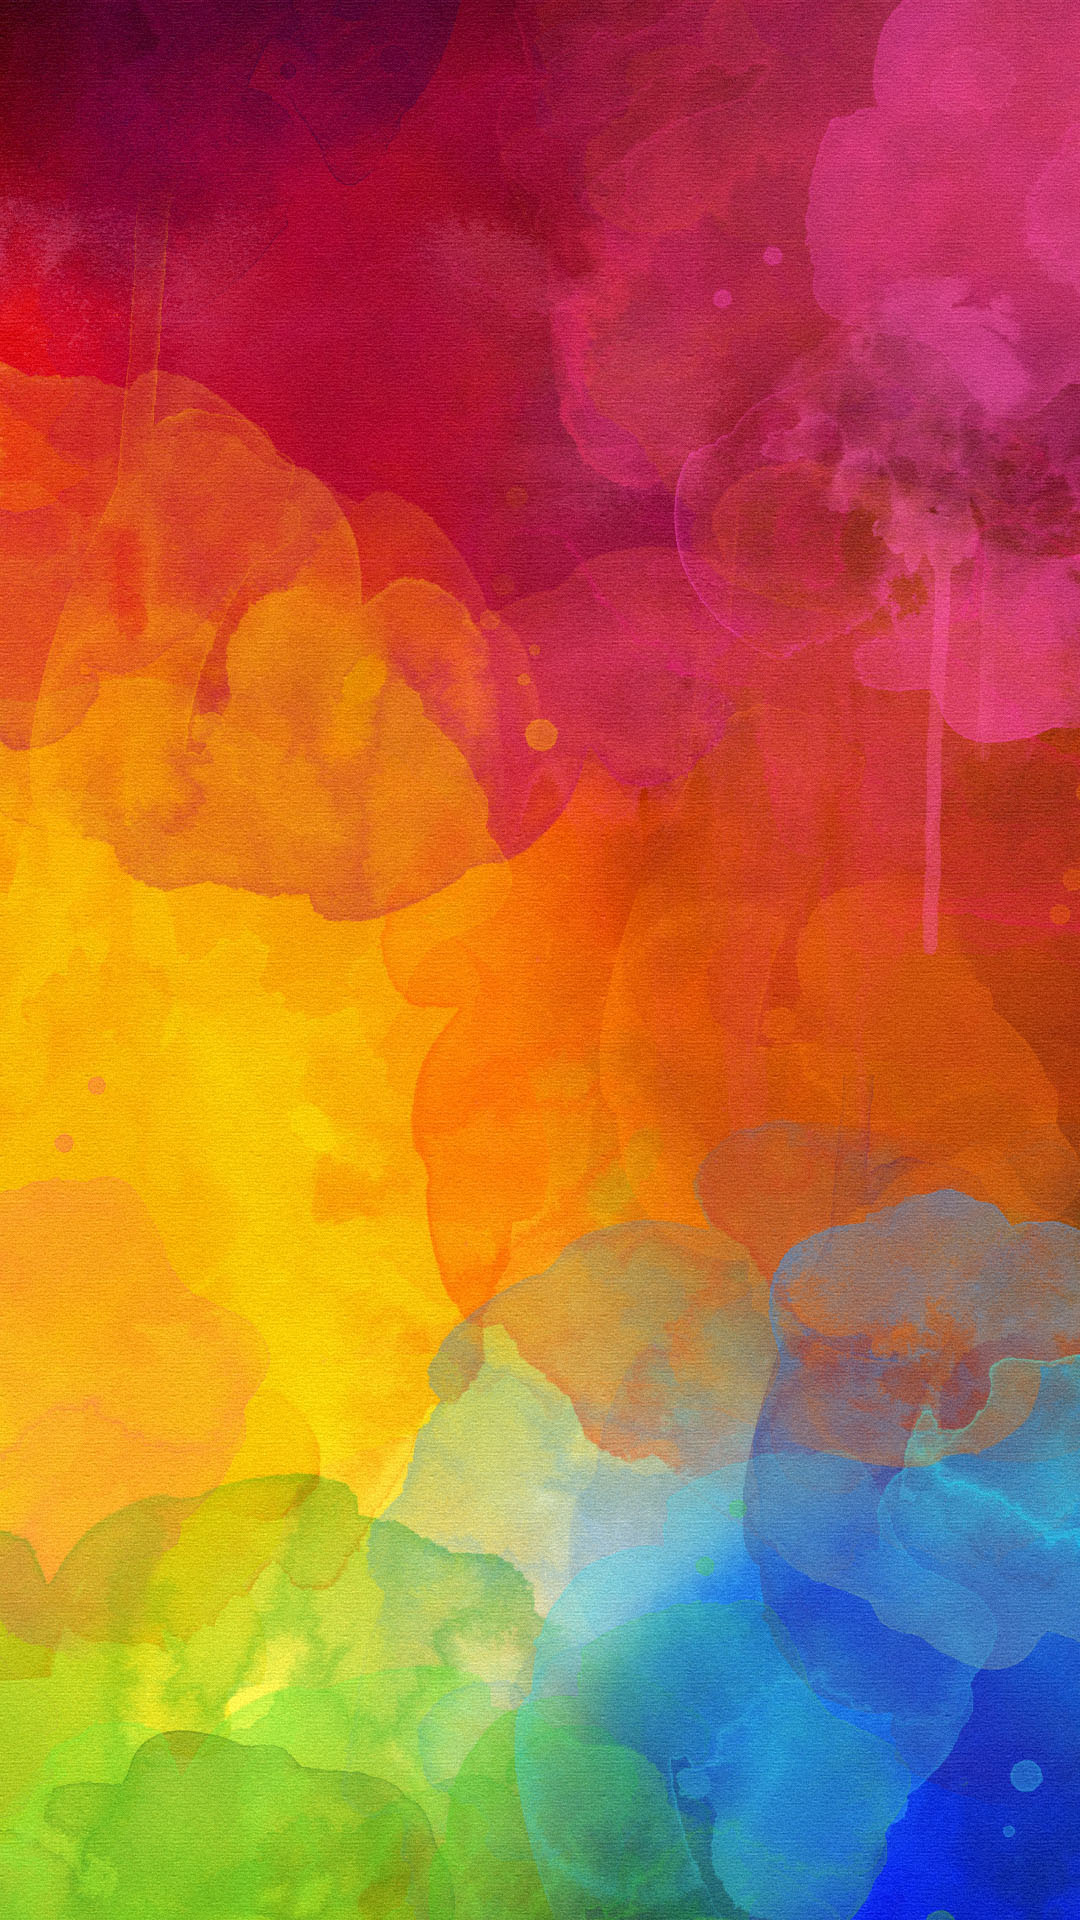 Colourful-Watercolour-Mark-Color-of-rainbow-in-abstract-wallpaper-wpc9003697